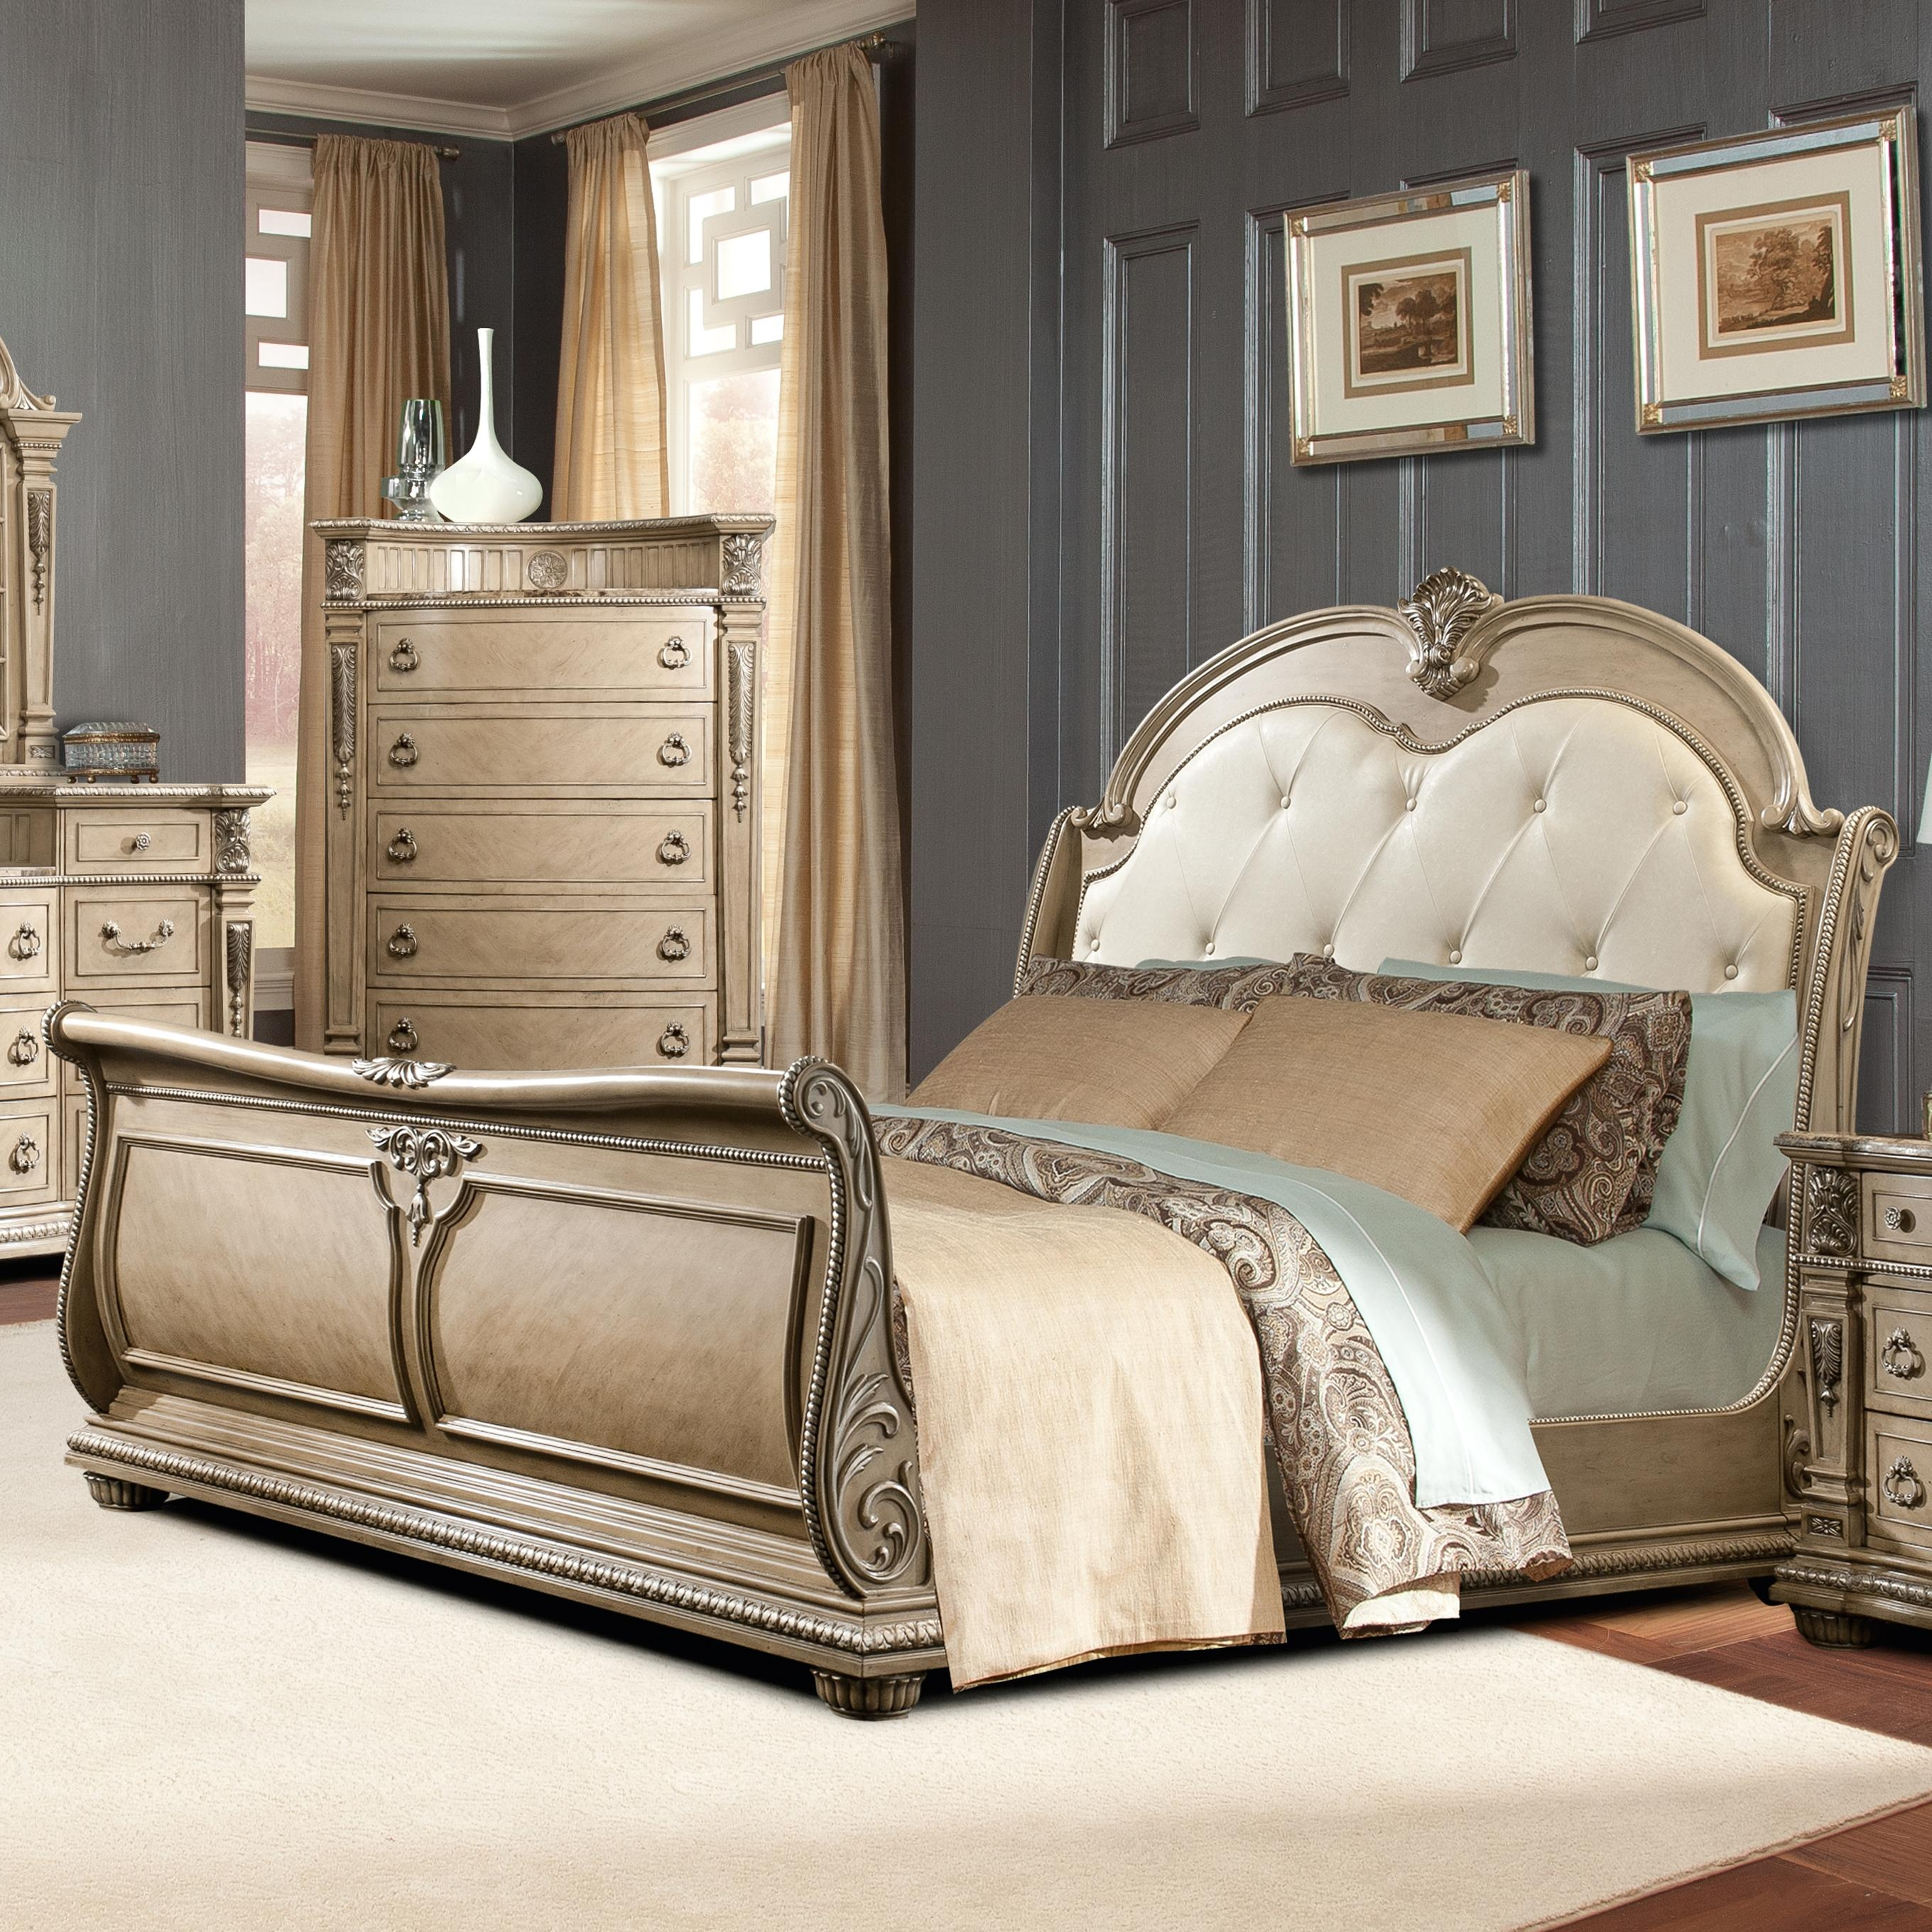 Bobs Furniture Queen Size Bed Frame